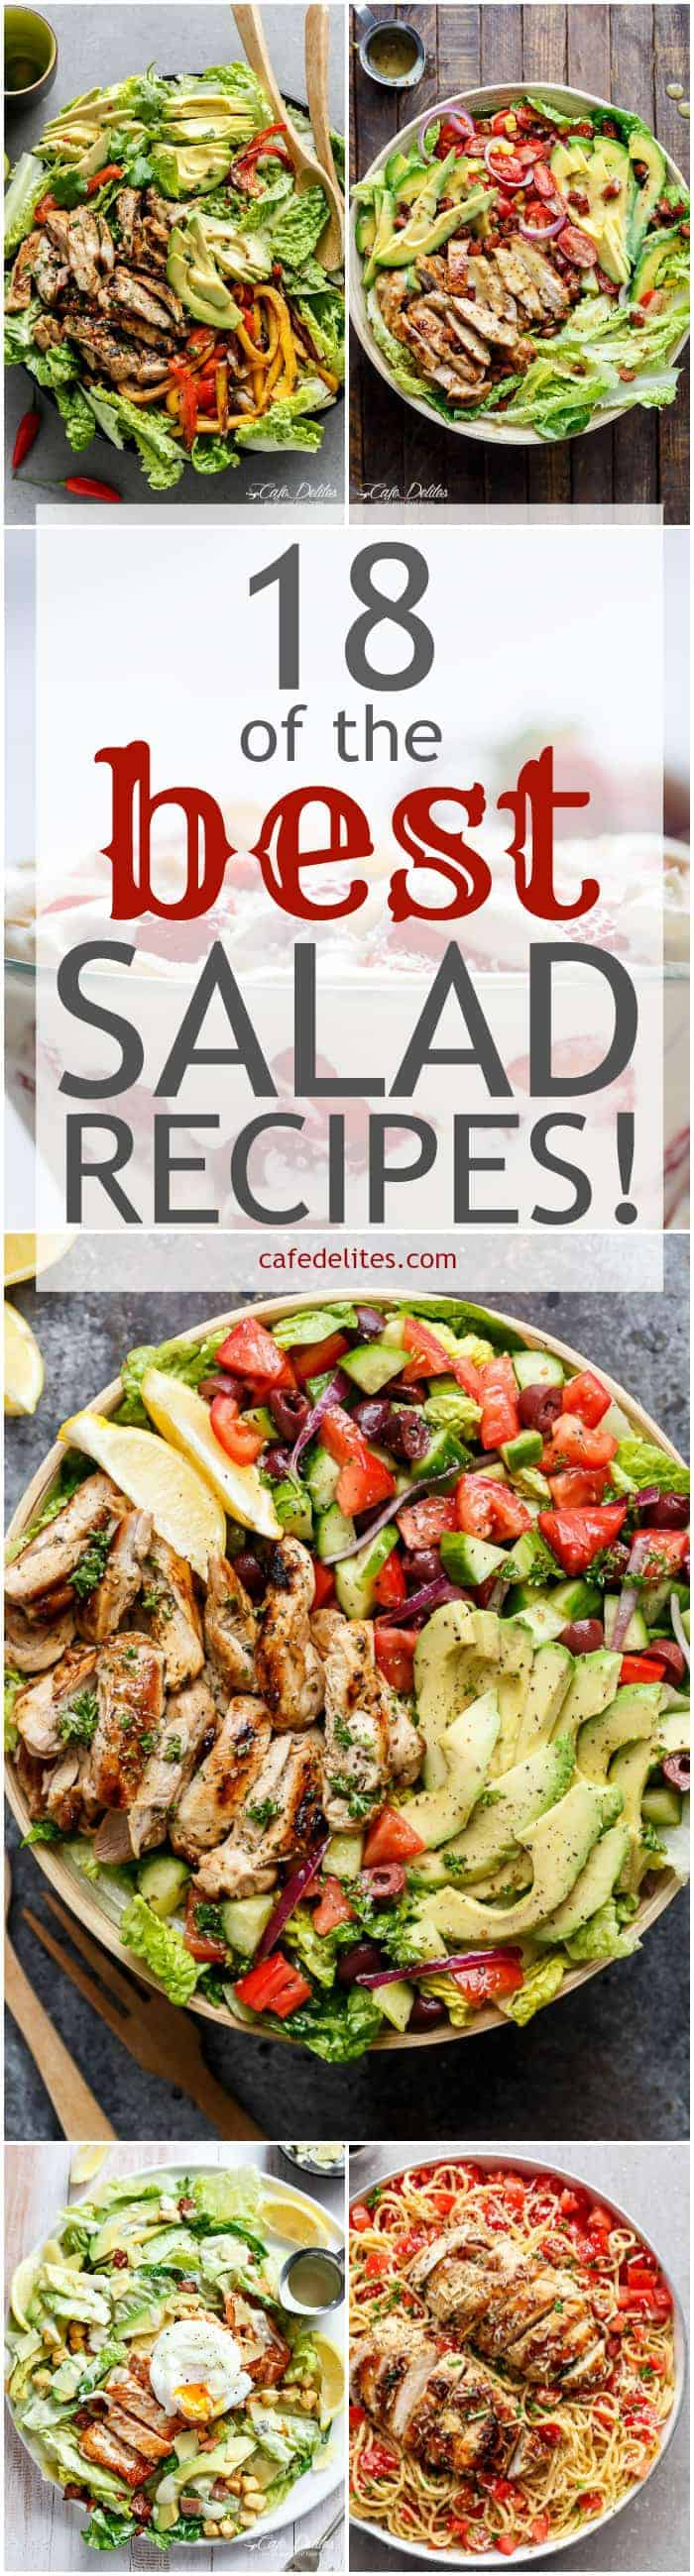 What is your most delicious salad tell us how to cook it 47